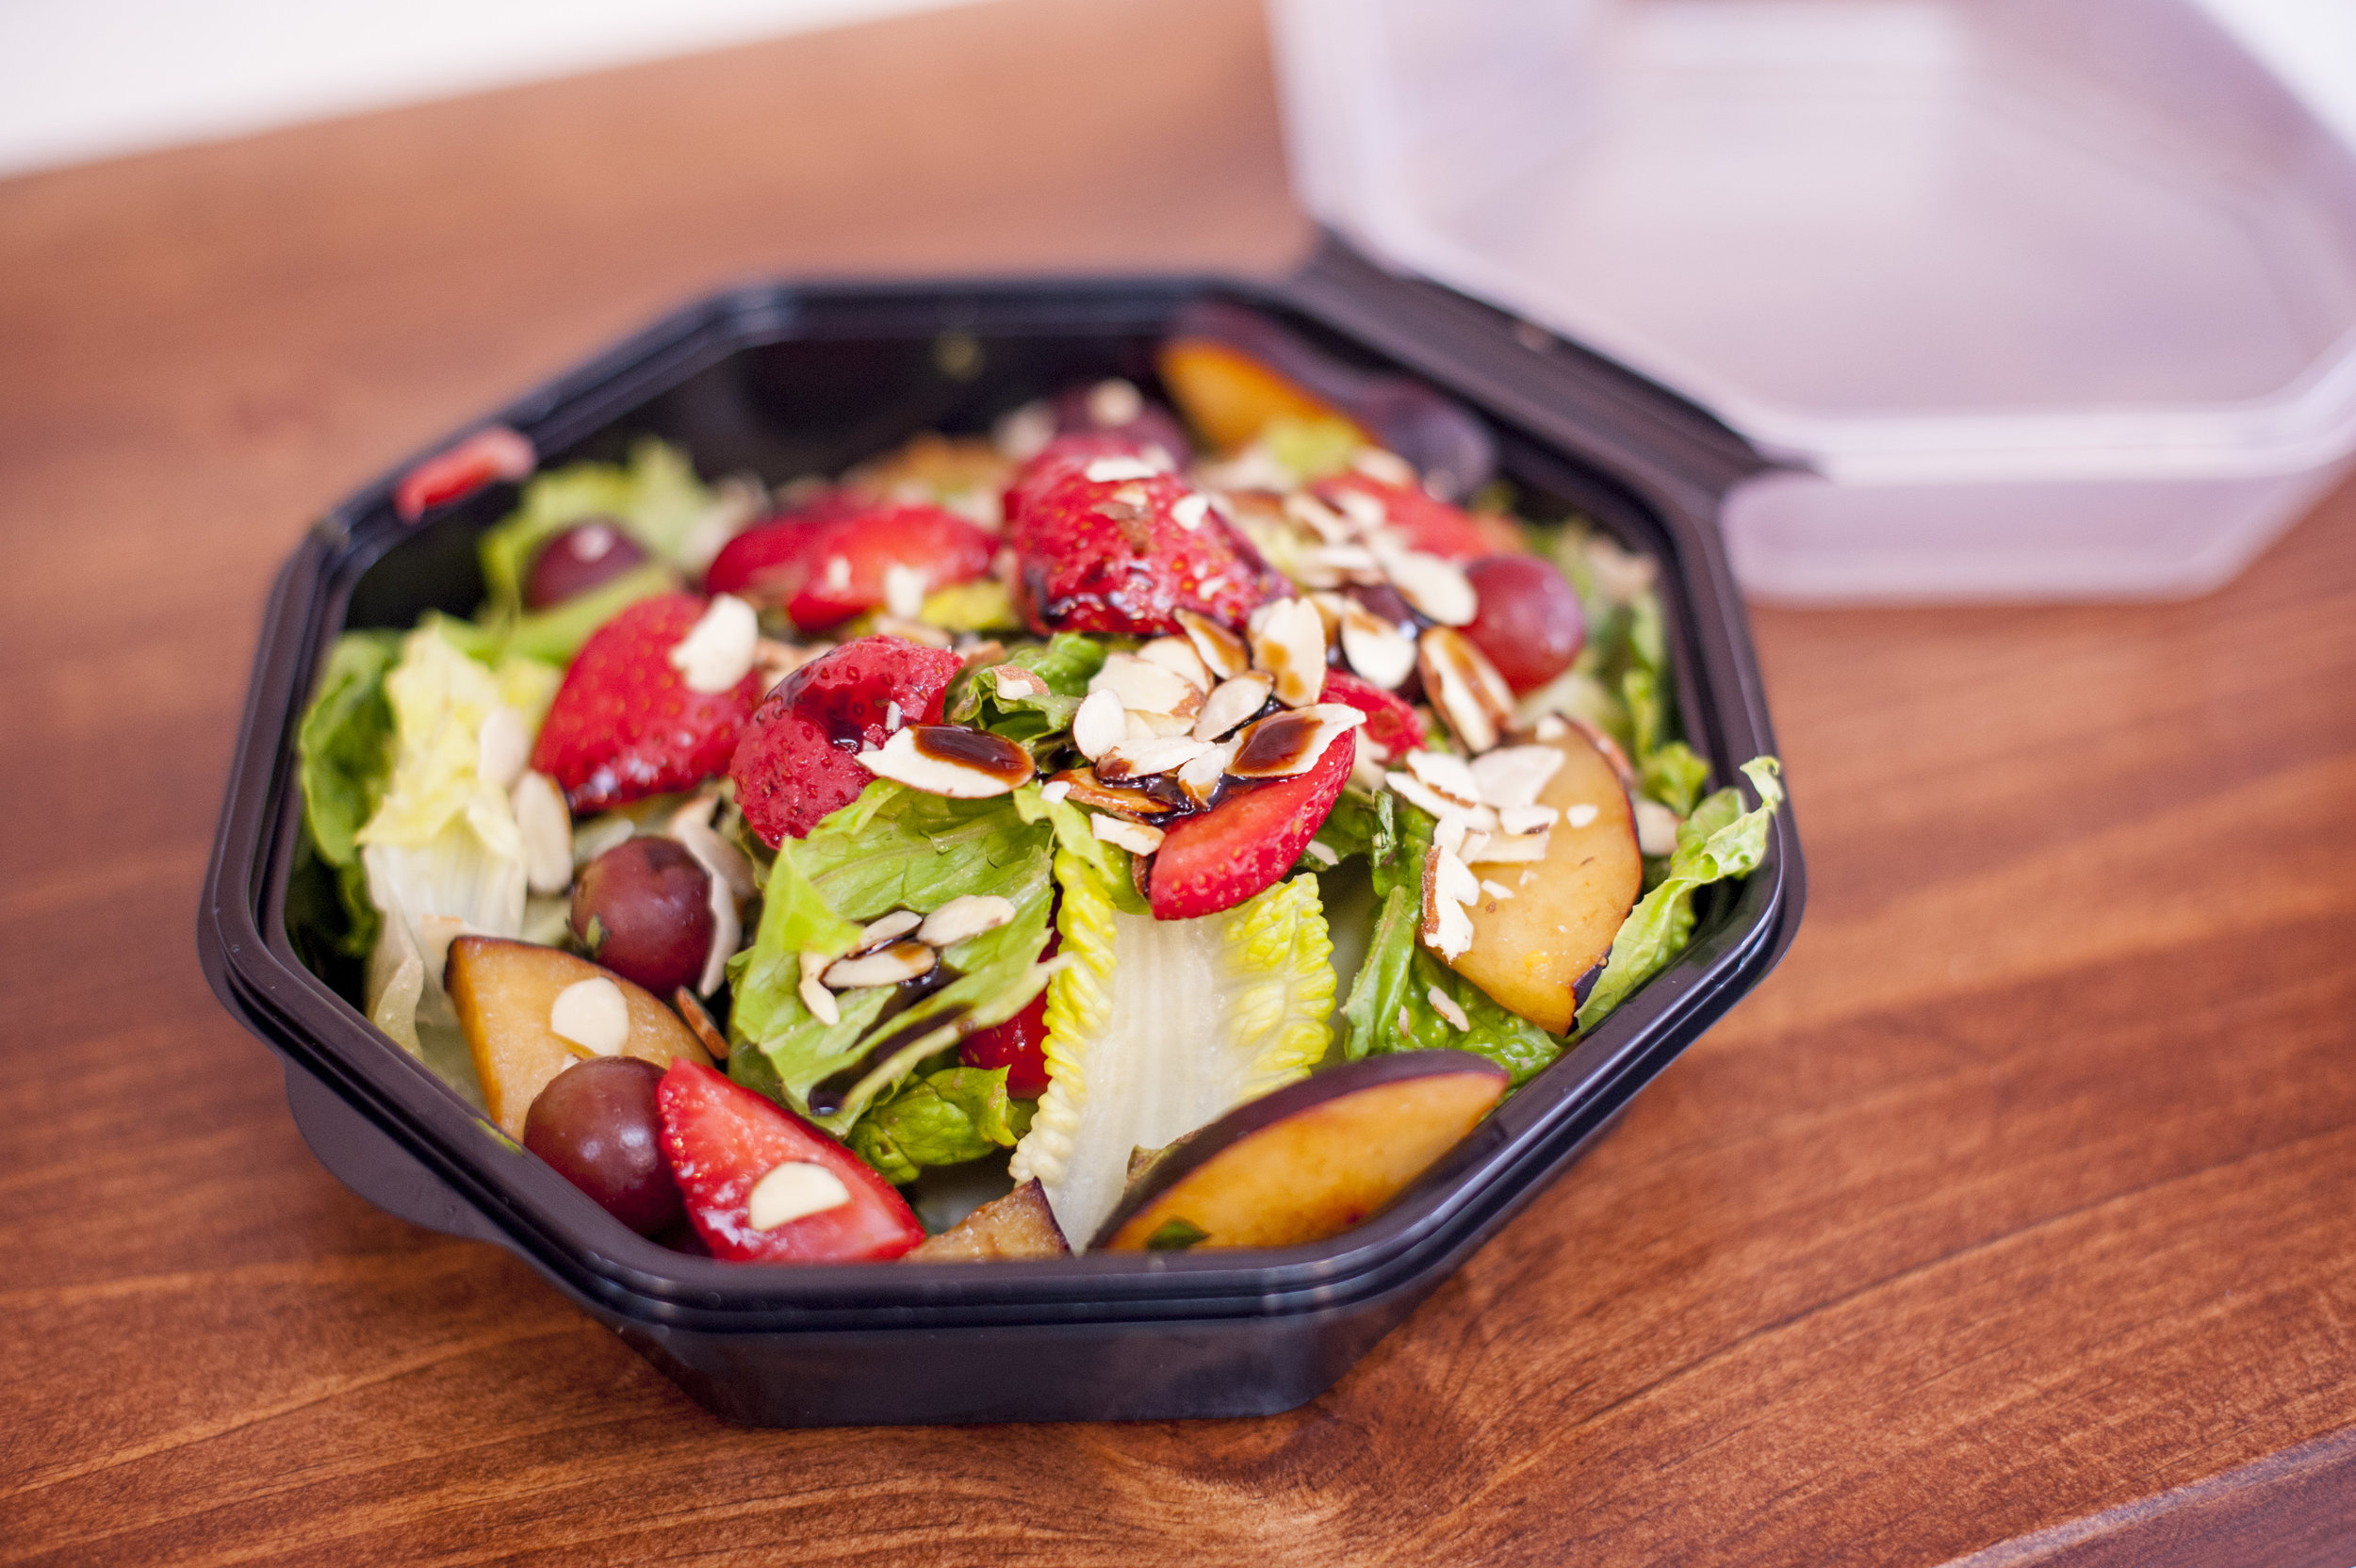 Start your course with a Spring Salad, bursting with the fruity flavors of plums, strawberries and grapes.